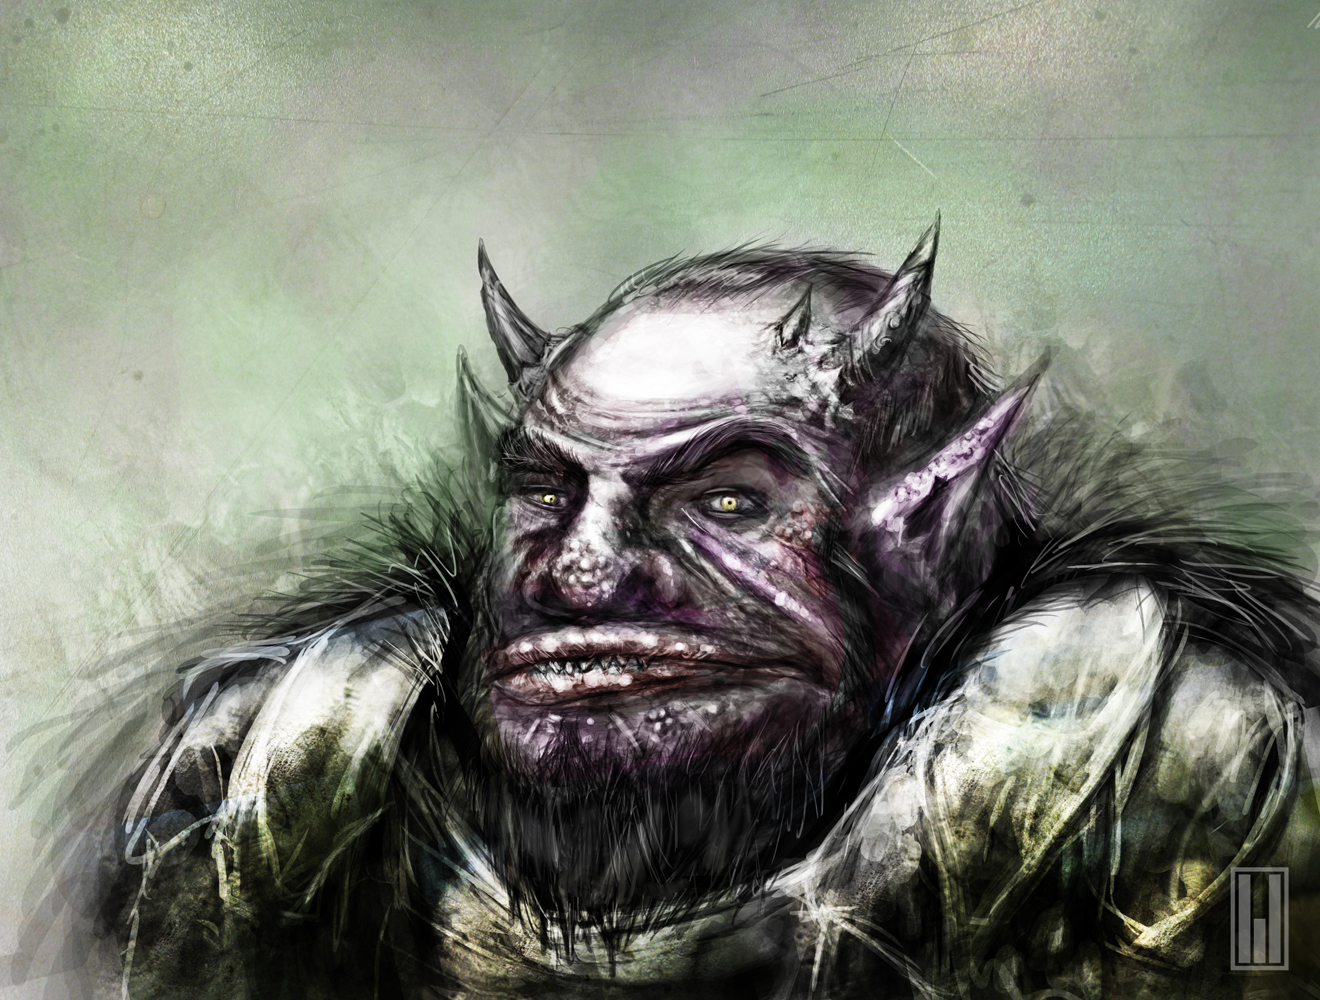 The friendly orc next door